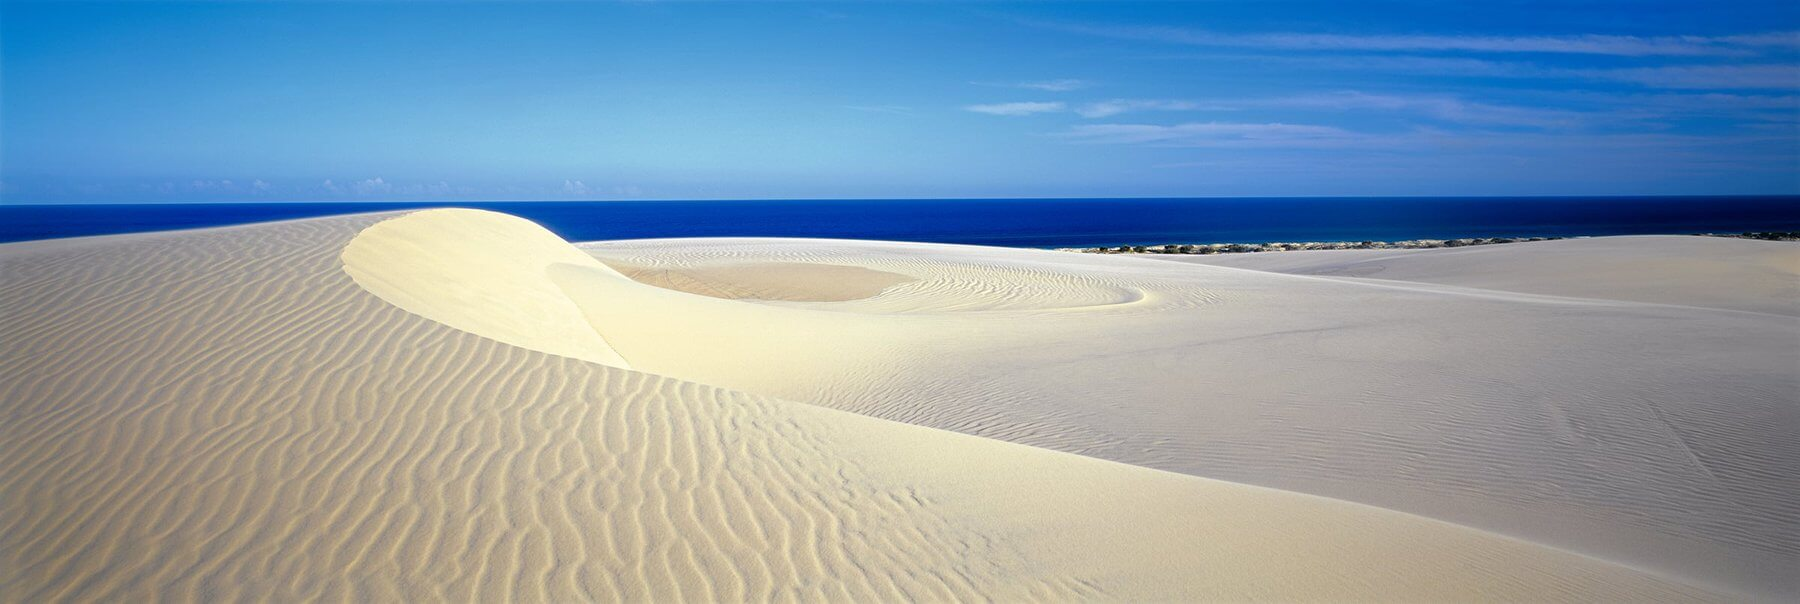 Why visit the sand dunes of Fraser Island?